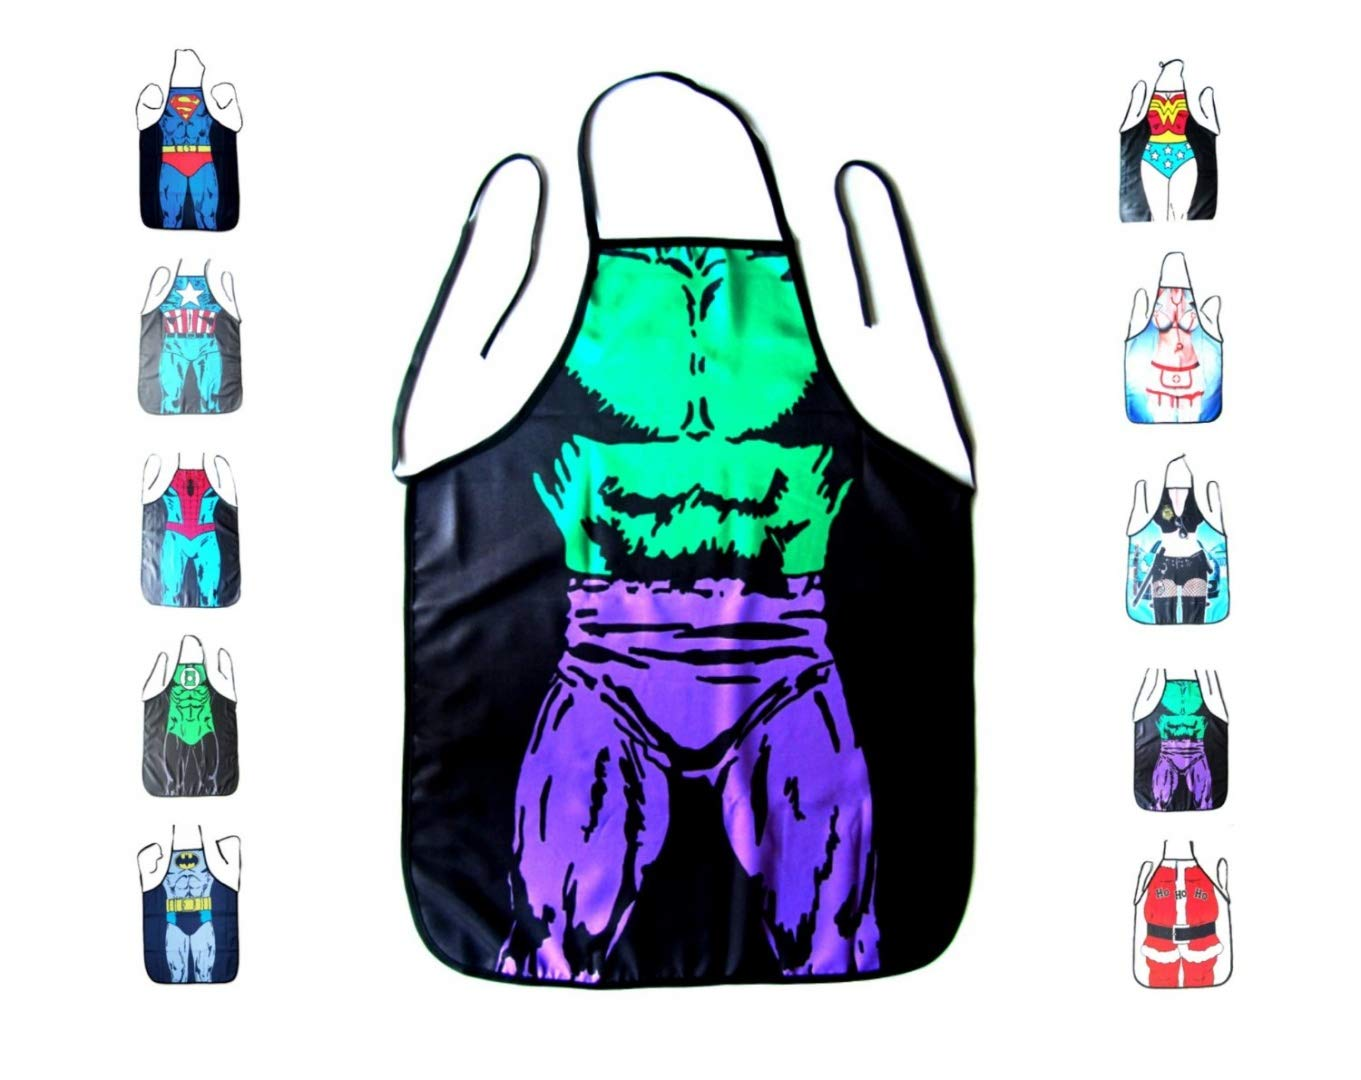 Starixx Funny Kitchen Apron, Cooking and Grilling with Superman, Batman, Wonder Woman or Captain America